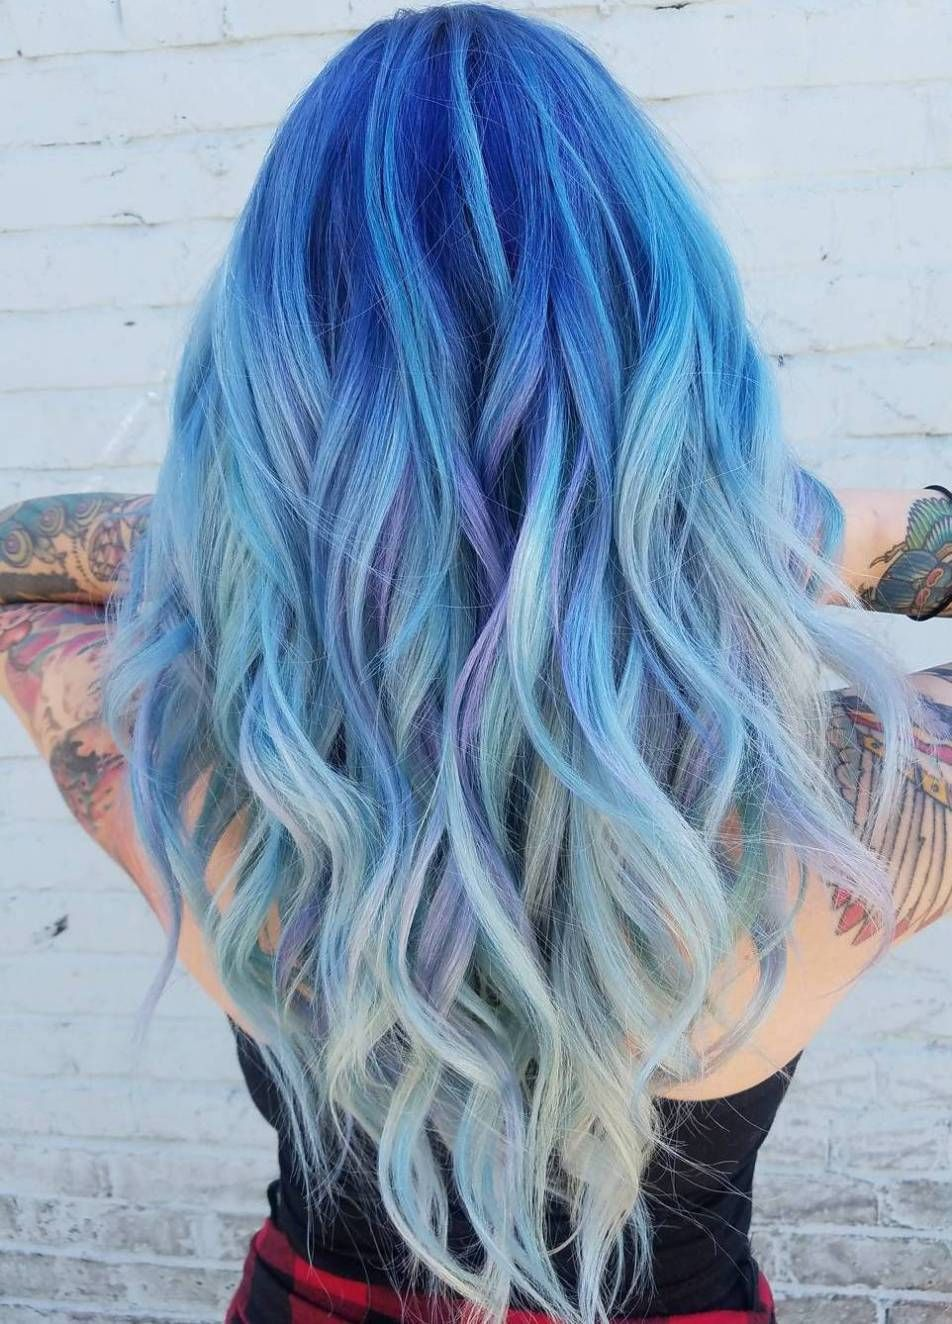 Ocean Hair Trend Is Taking Blue Hair to the Next Level in ...